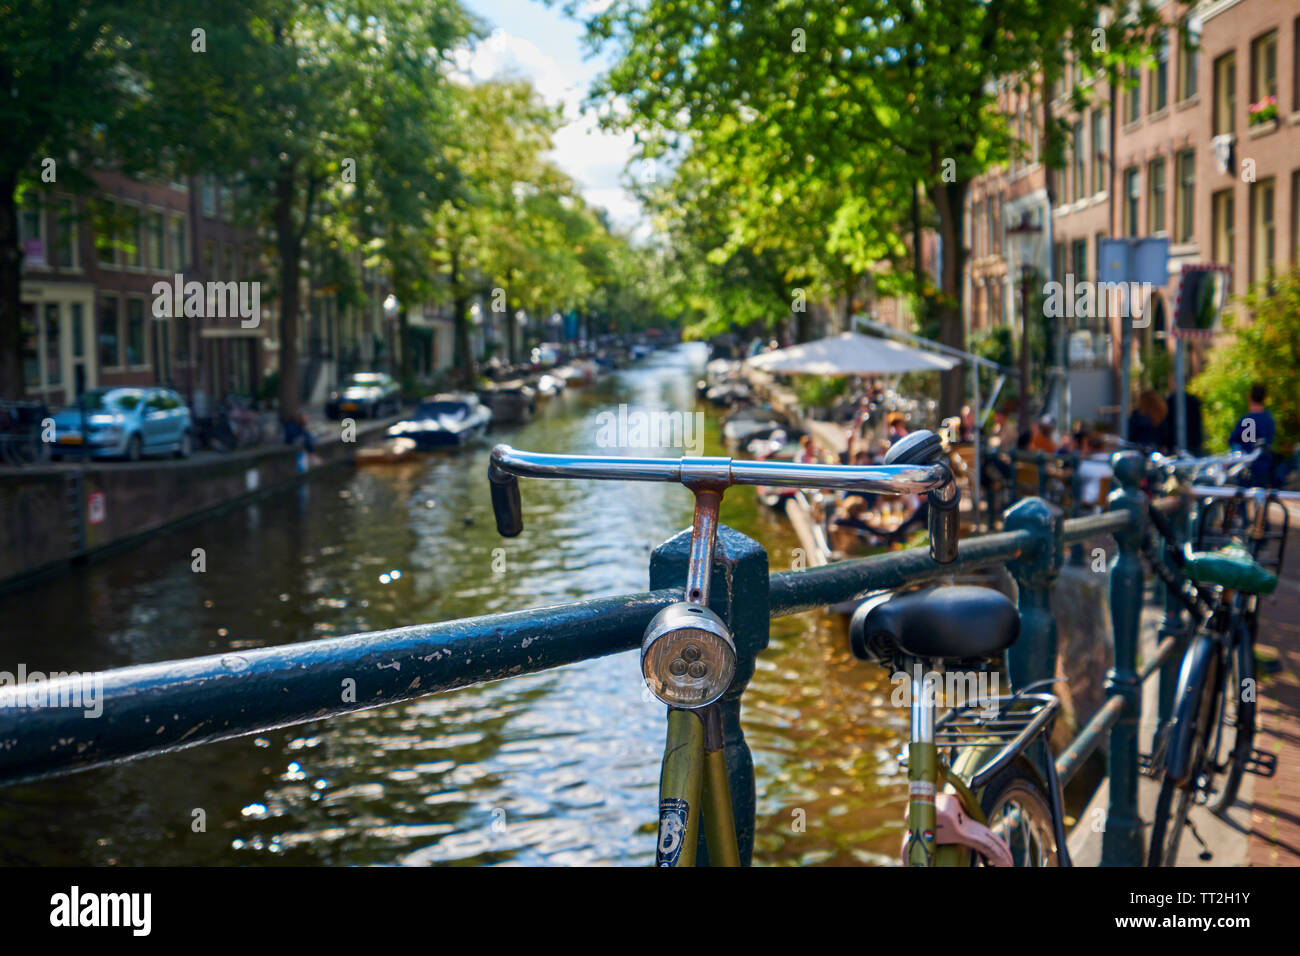 Close Up View of a Classic Old Bicycle on a Small Bridge, Amsterdam, Netherlands Stock Photo